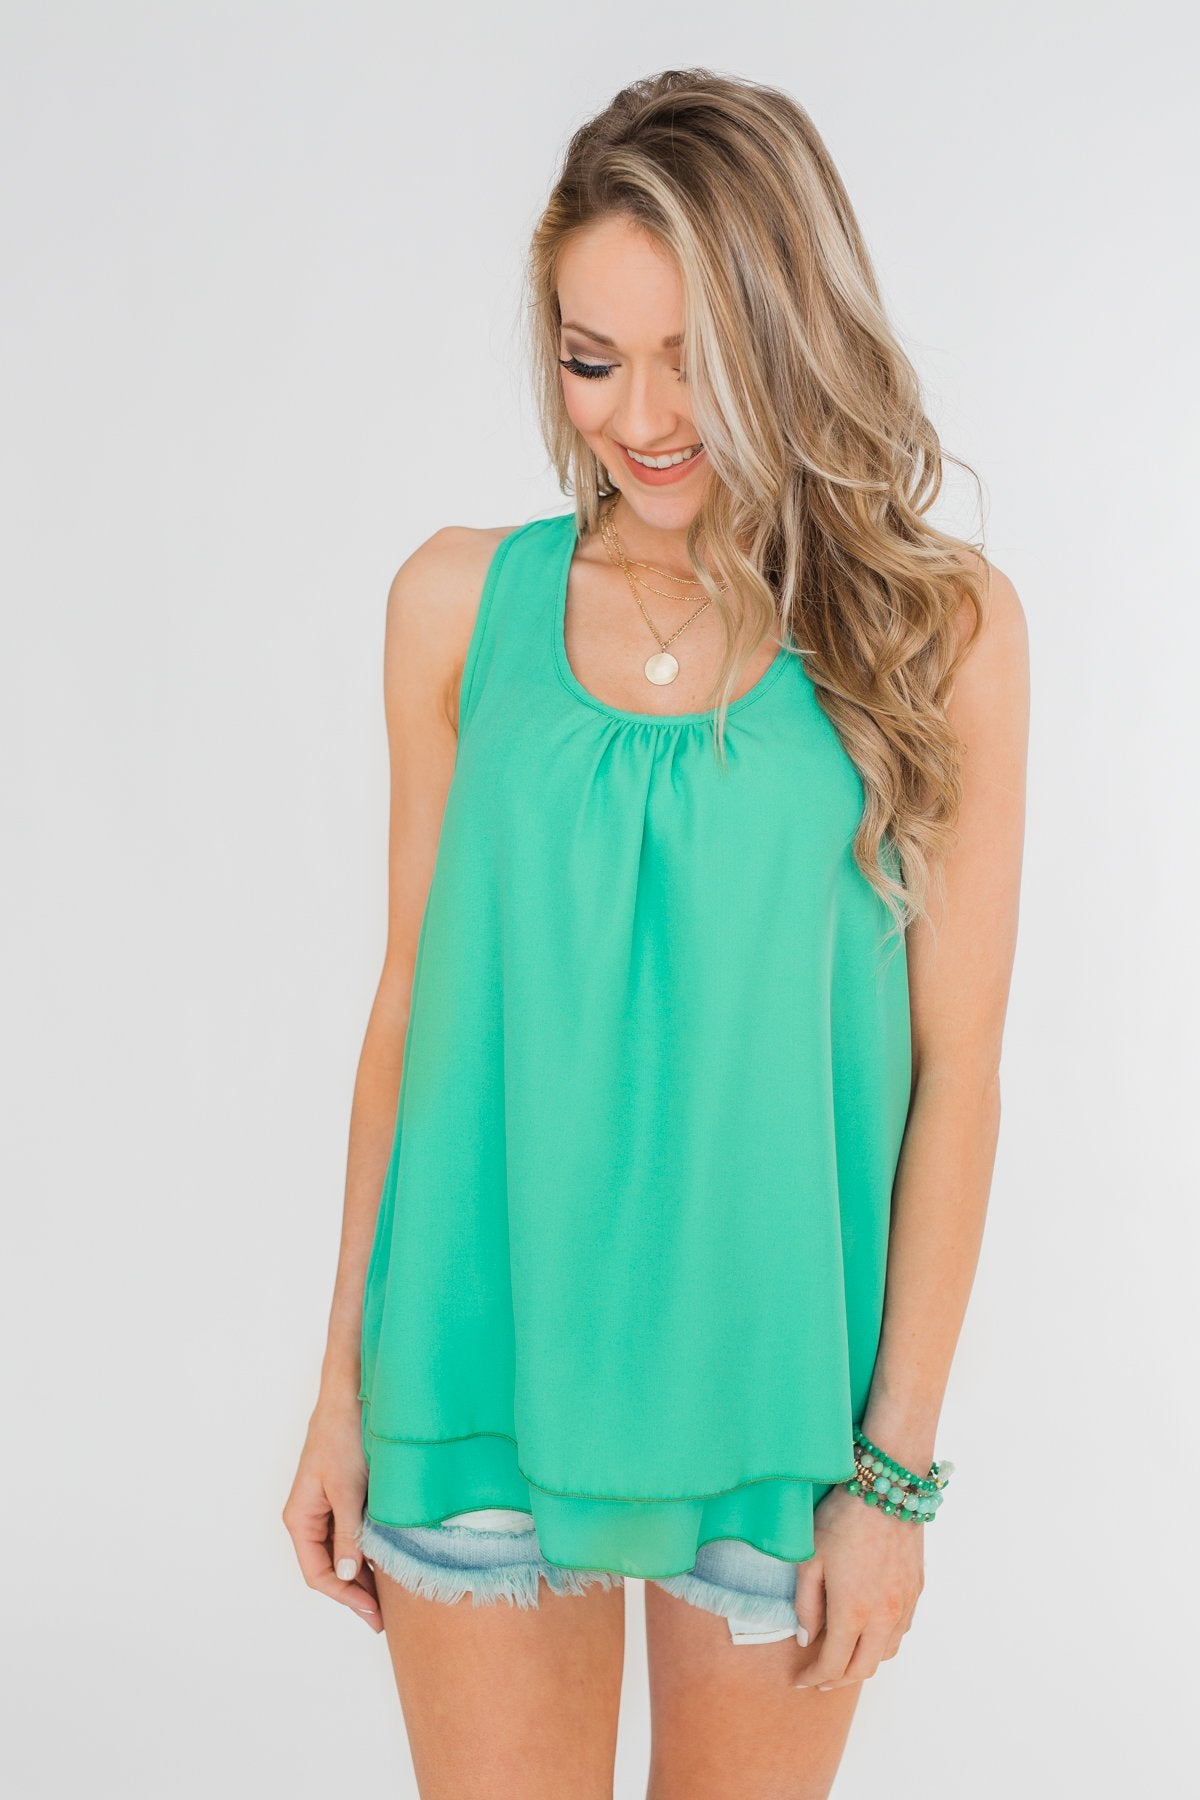 337718b1bf1bd5 Happy Days Racerback Ruffle Tank Top- Teal – The Pulse Boutique